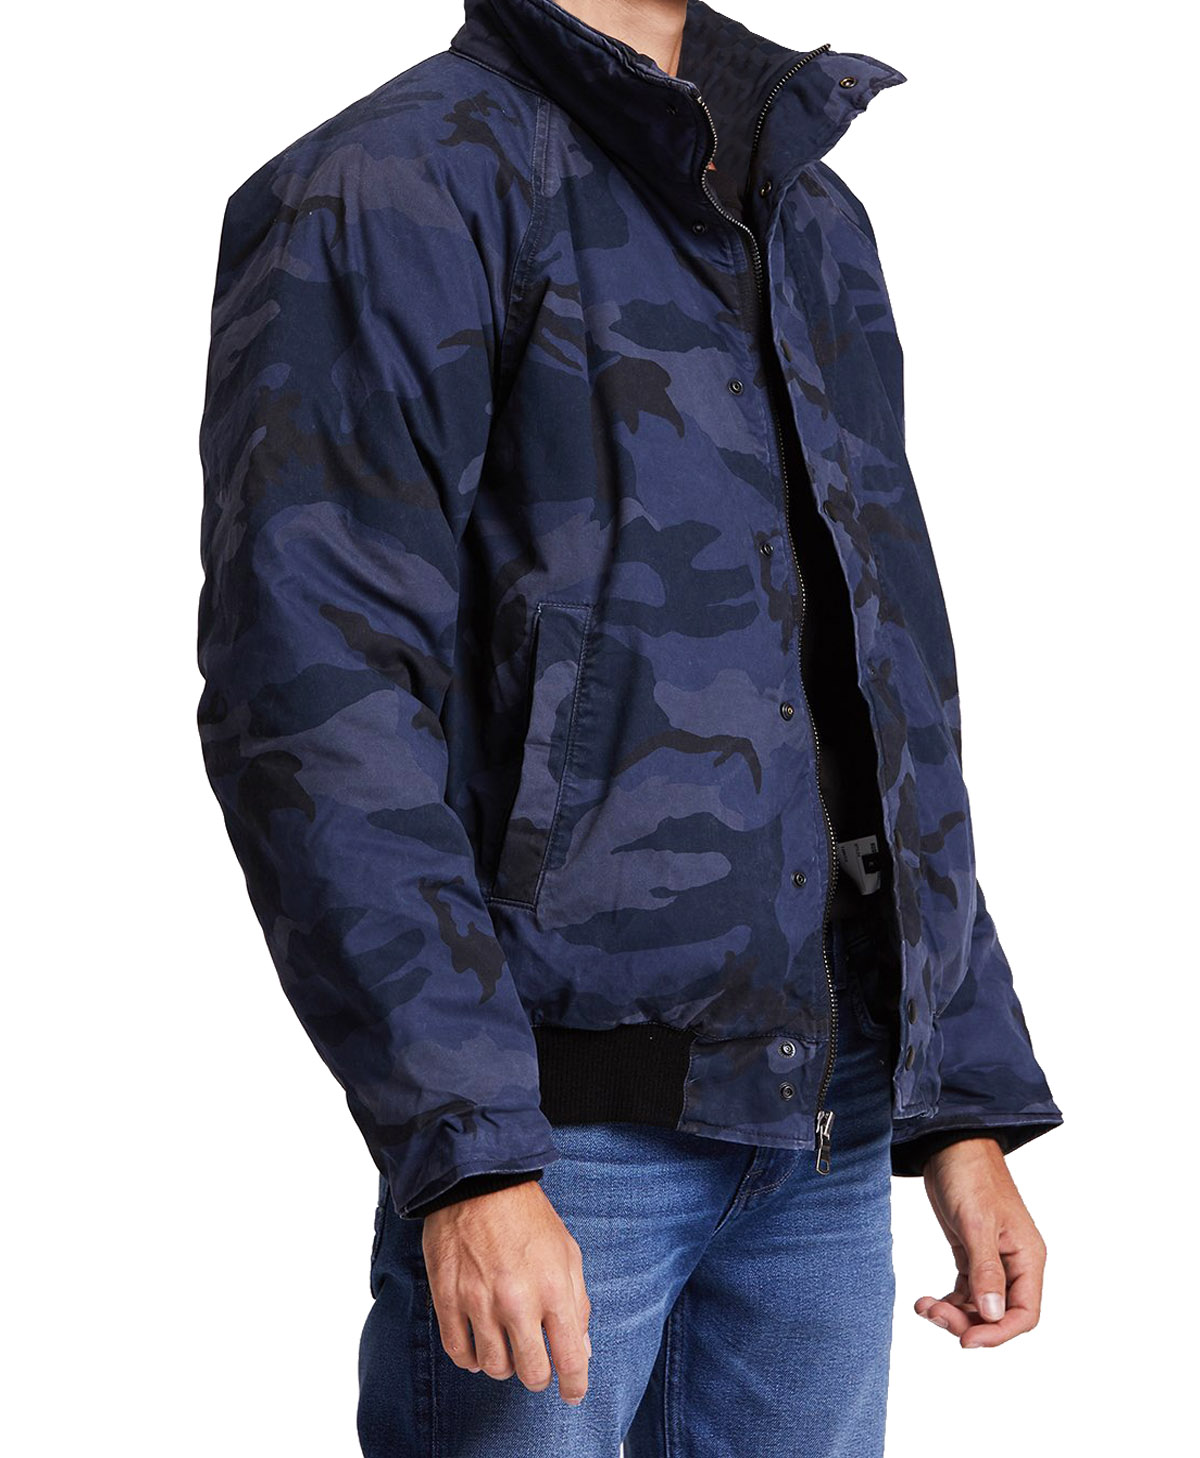 Hudson-Jeans-Blue-Camo-Army-Casual-Full-Zip-amp-Snap-Button-Front-Bomber-Jacket thumbnail 3